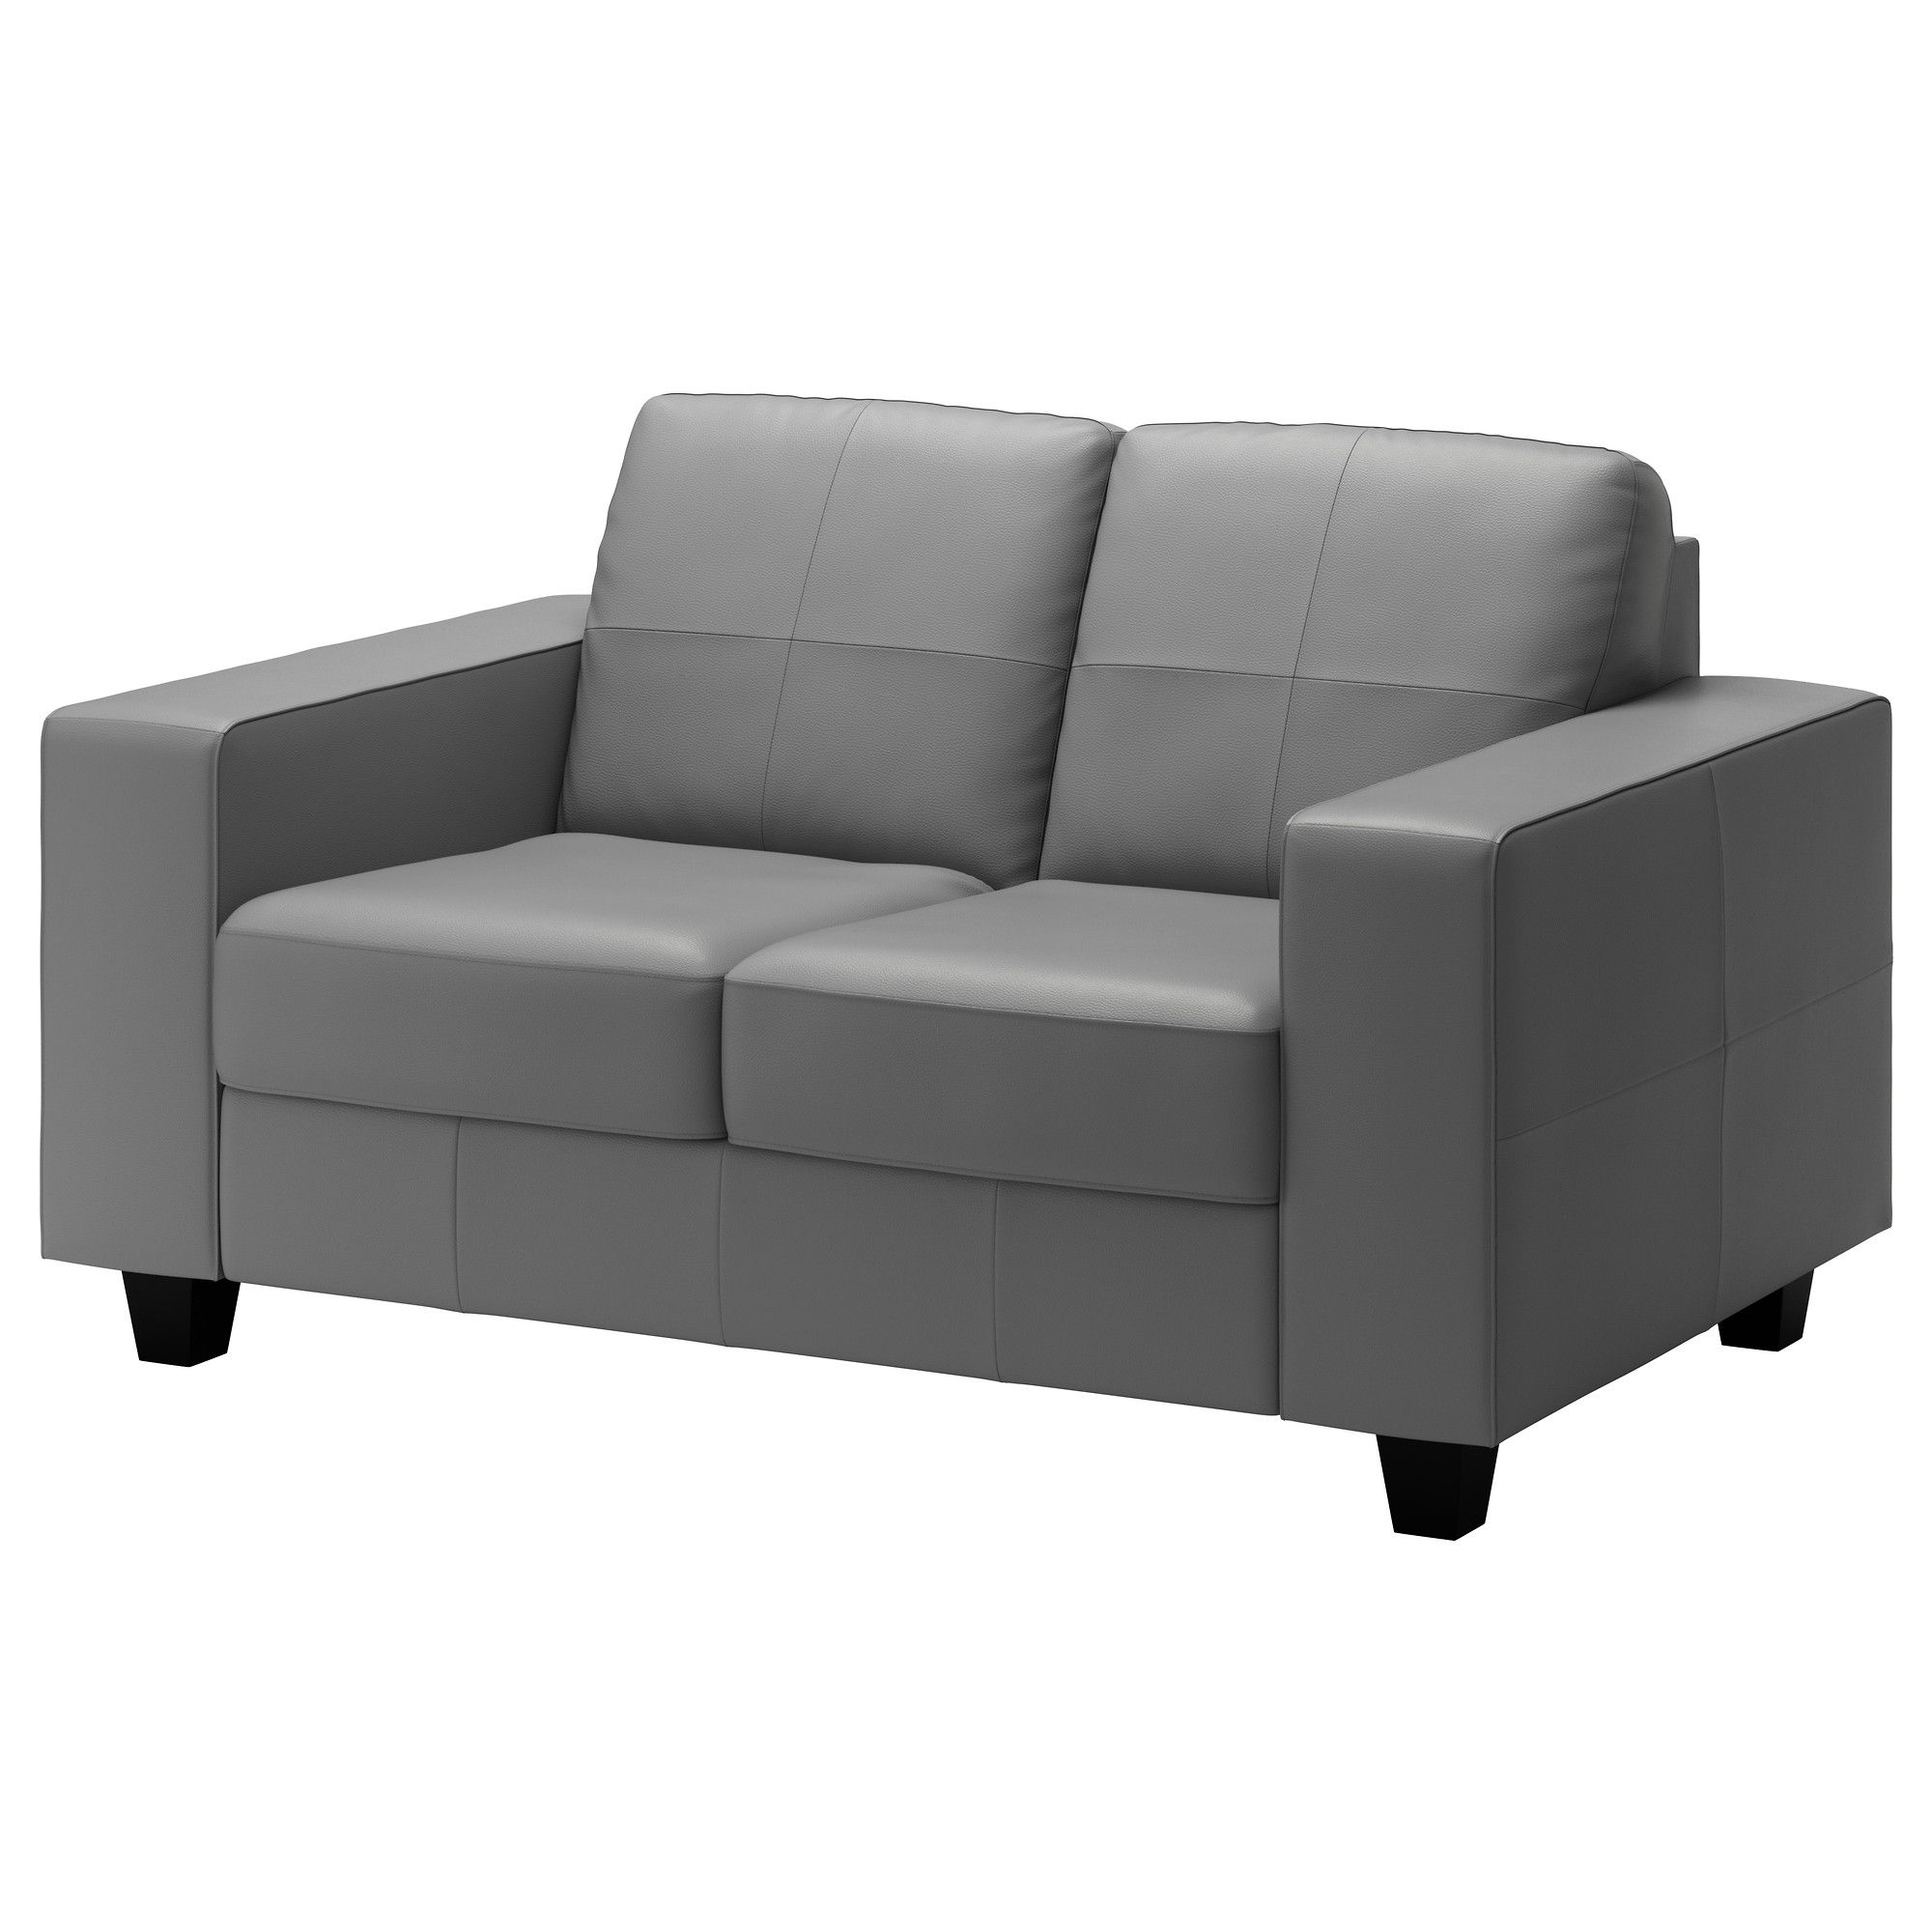 Shop For Furniture Home Accessories More Ikea Home Small Leather Sofa Ikea Sofa